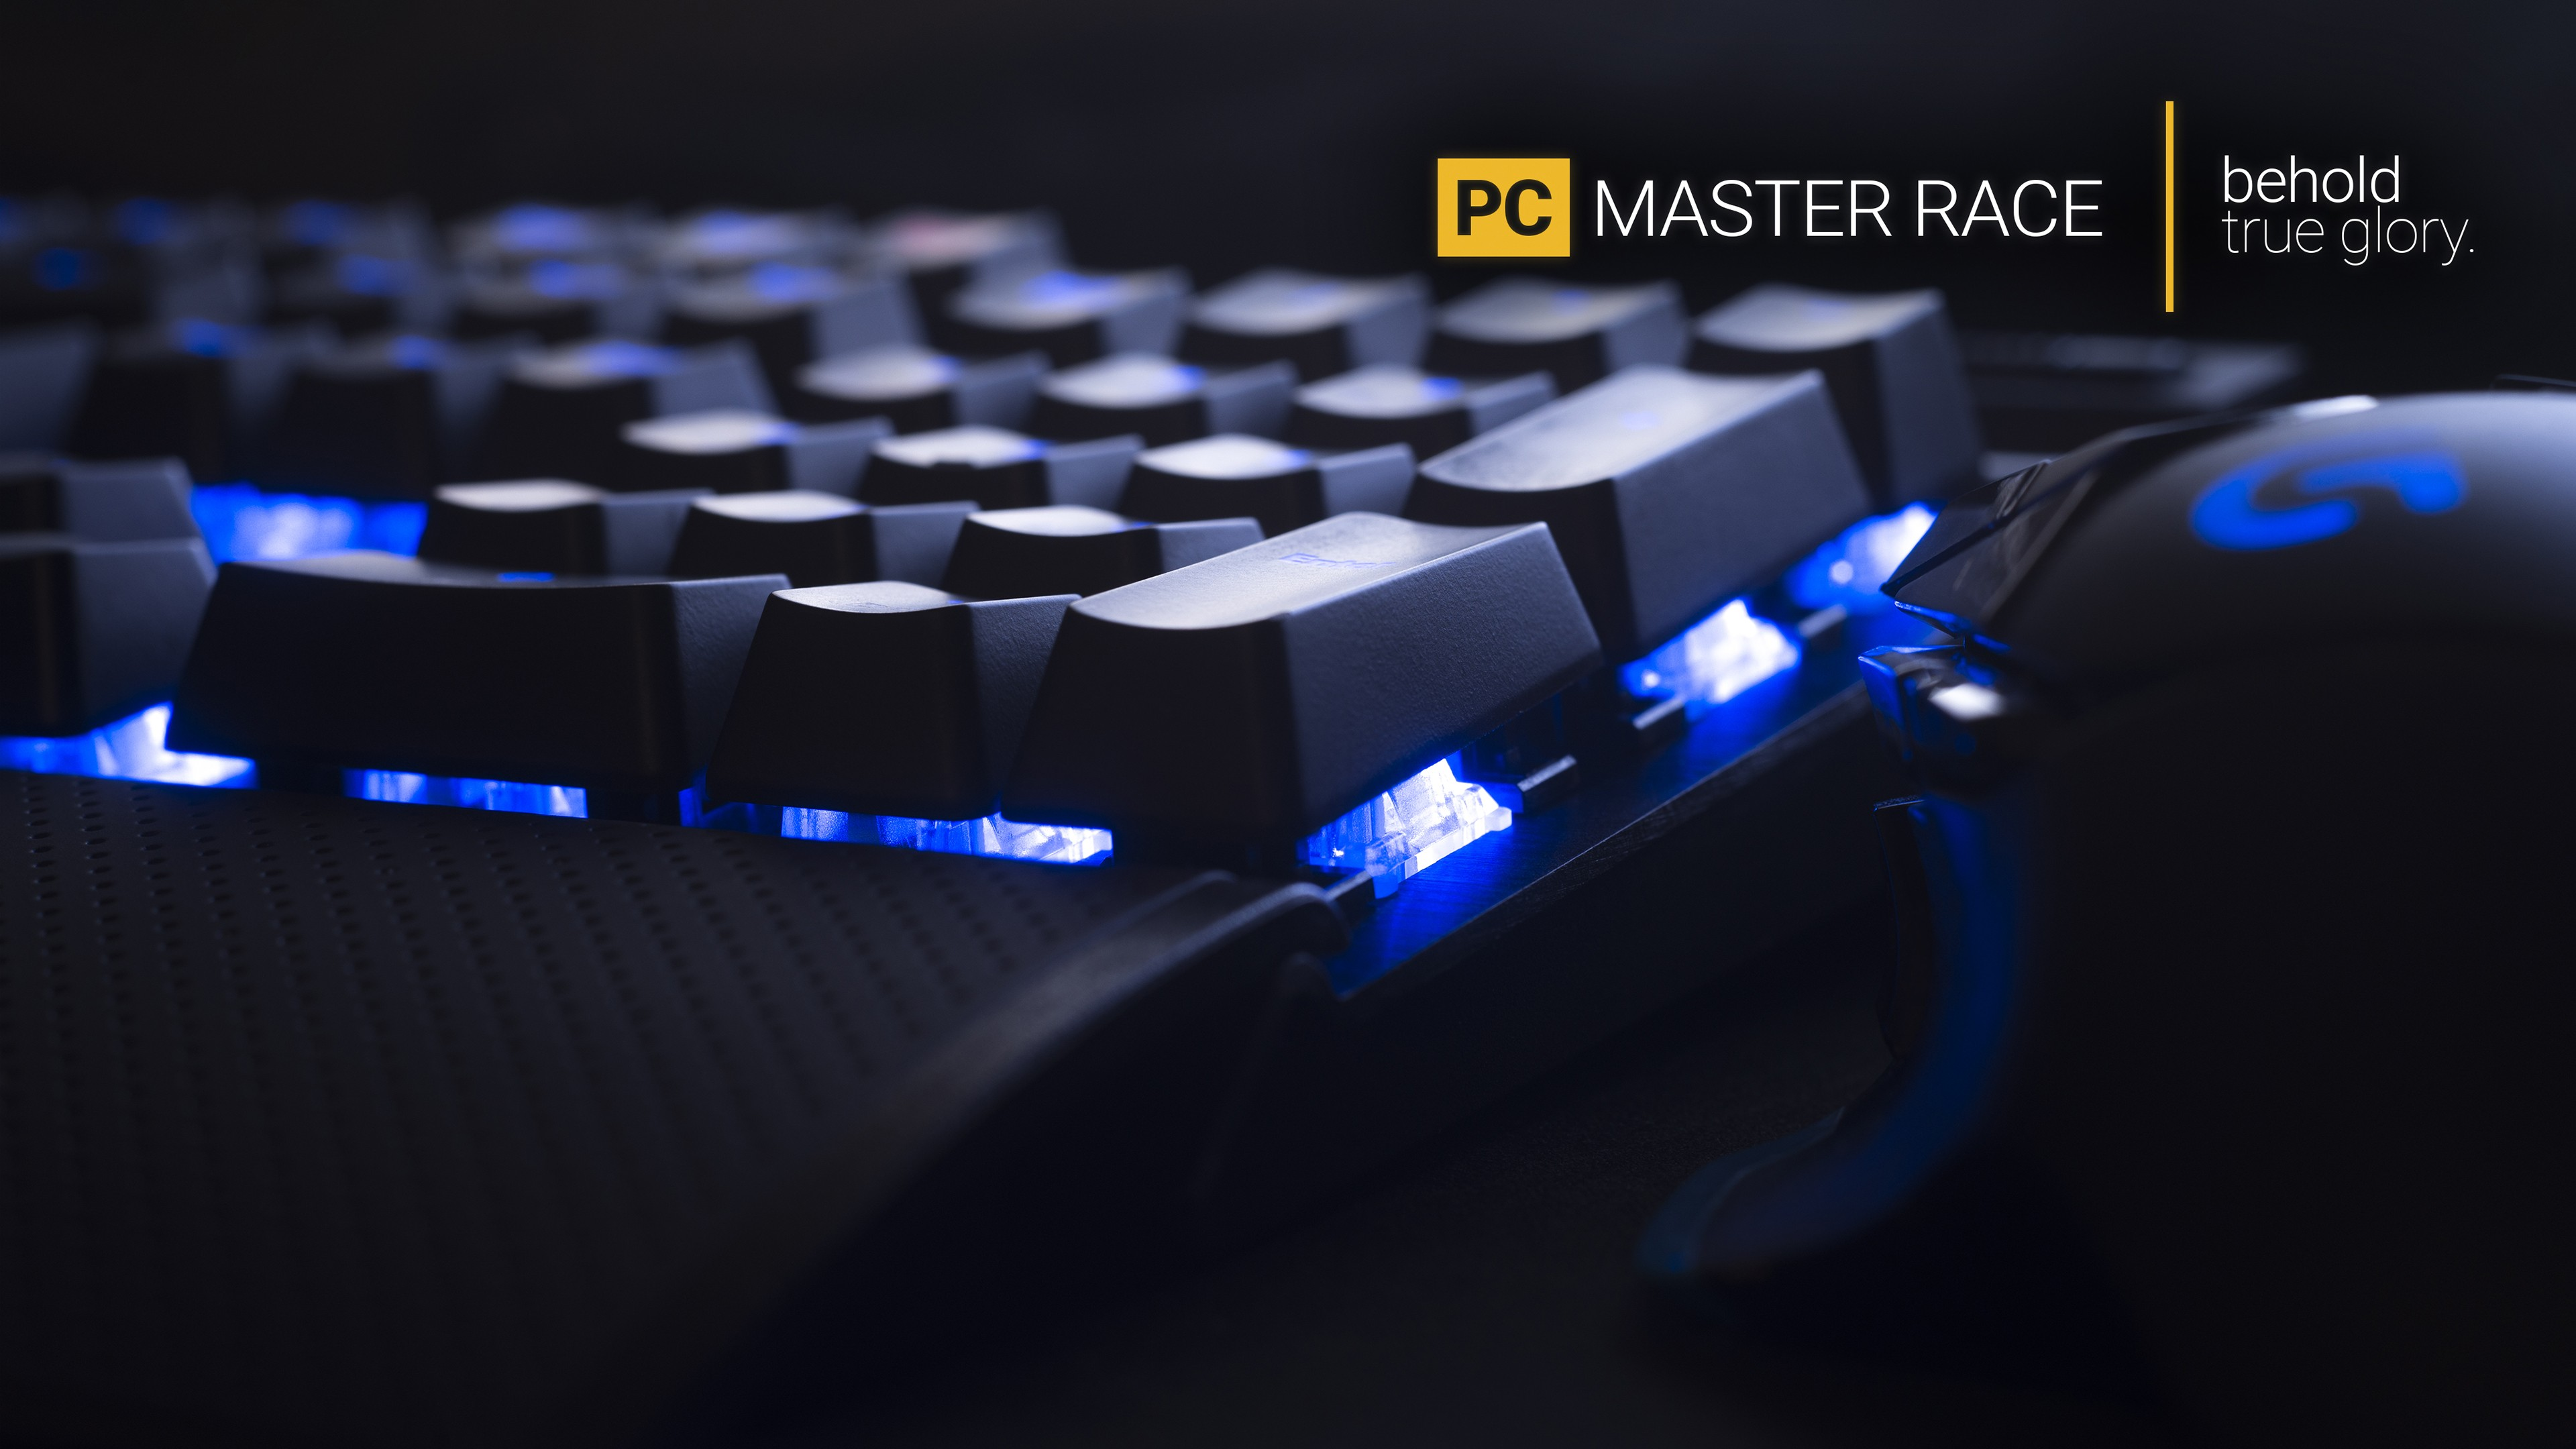 master race blue lights computer mice keyboards typography digital art technology computer computer mouse hardware pc master  race pc gaming